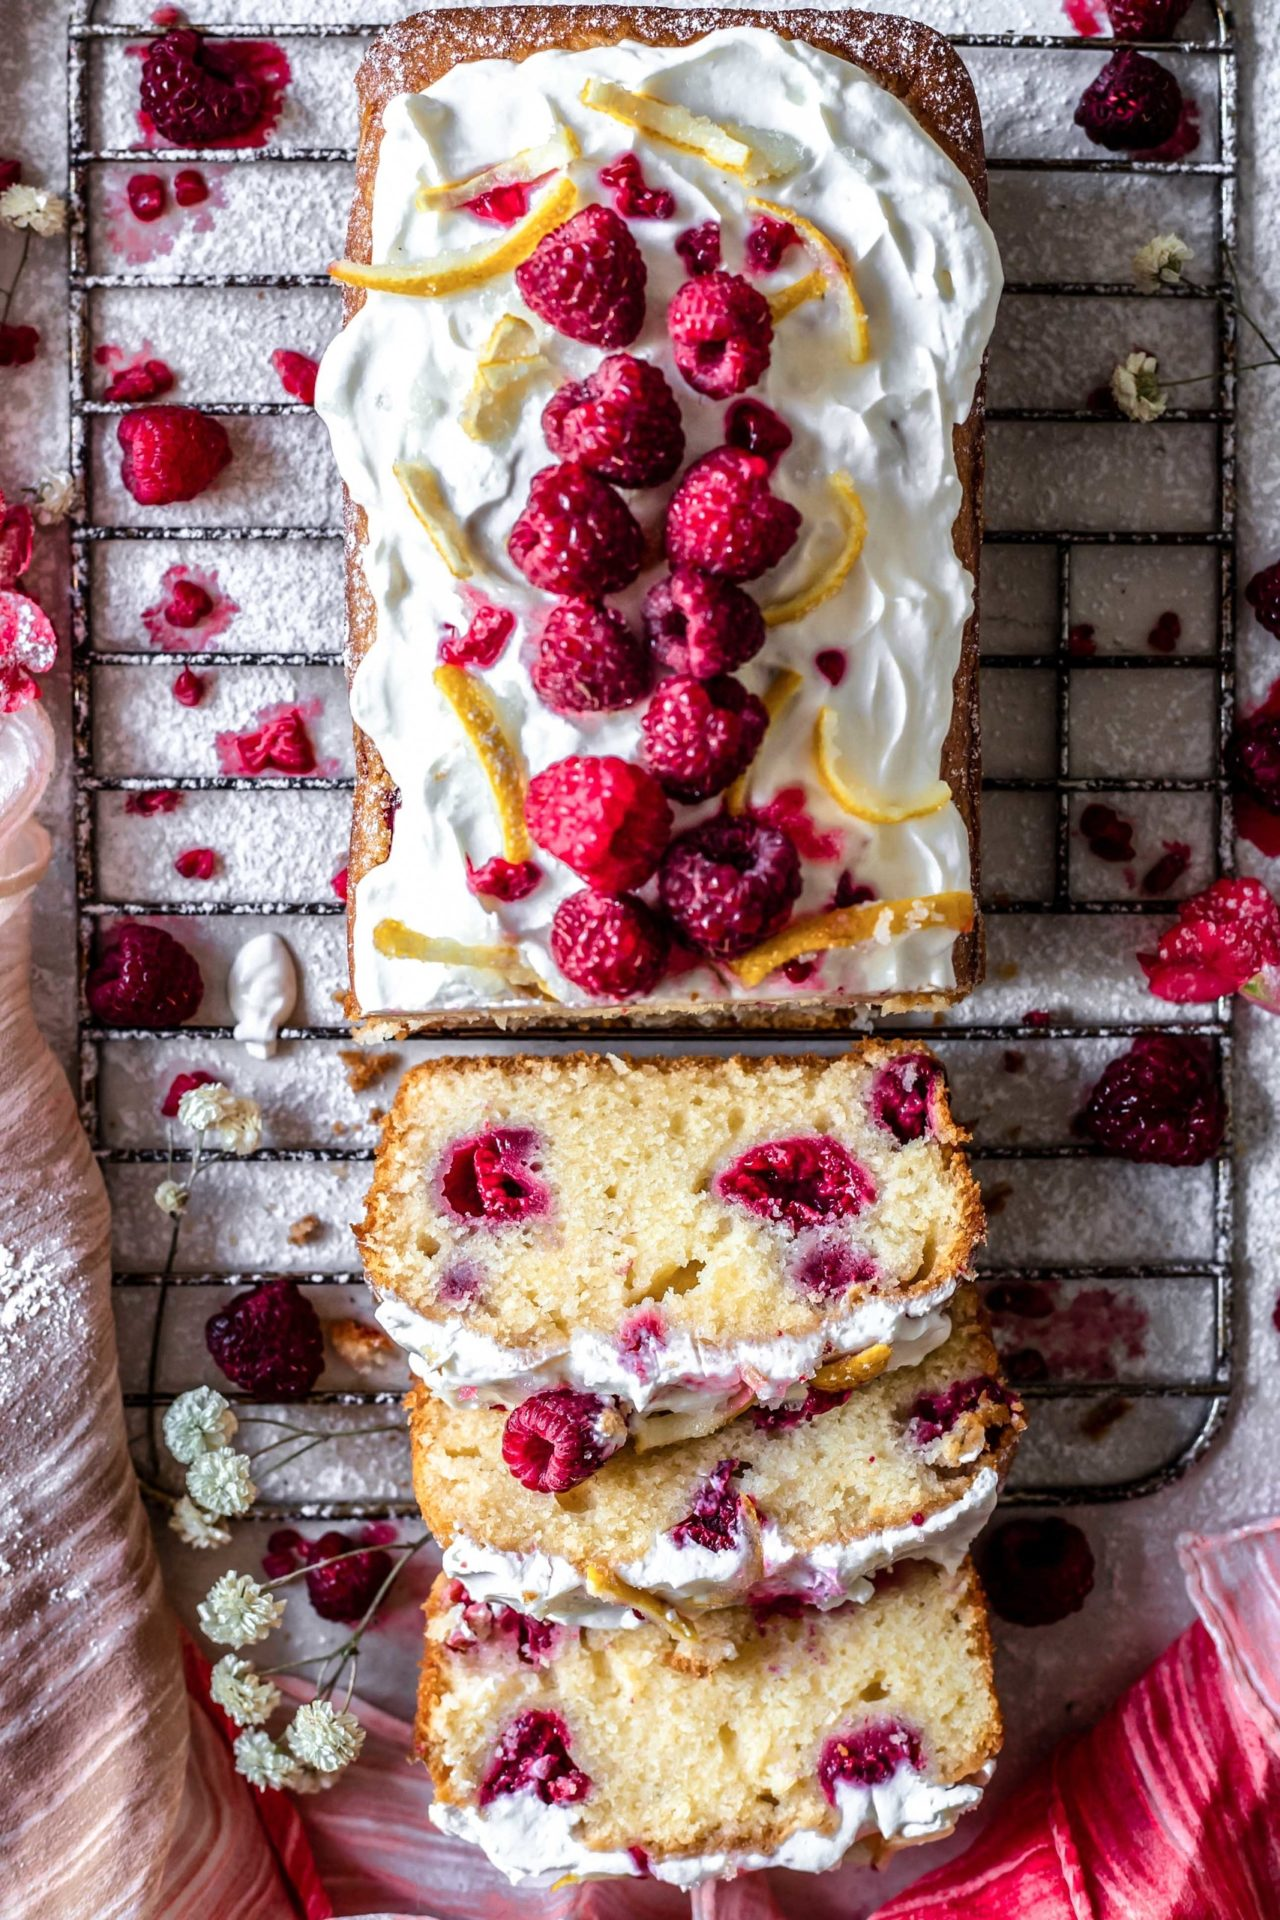 This Gluten-Free Lemon and Raspberry Loaf Cake is light, fluffy, perfectly sweetened, lemony, flavorful and so delicious!